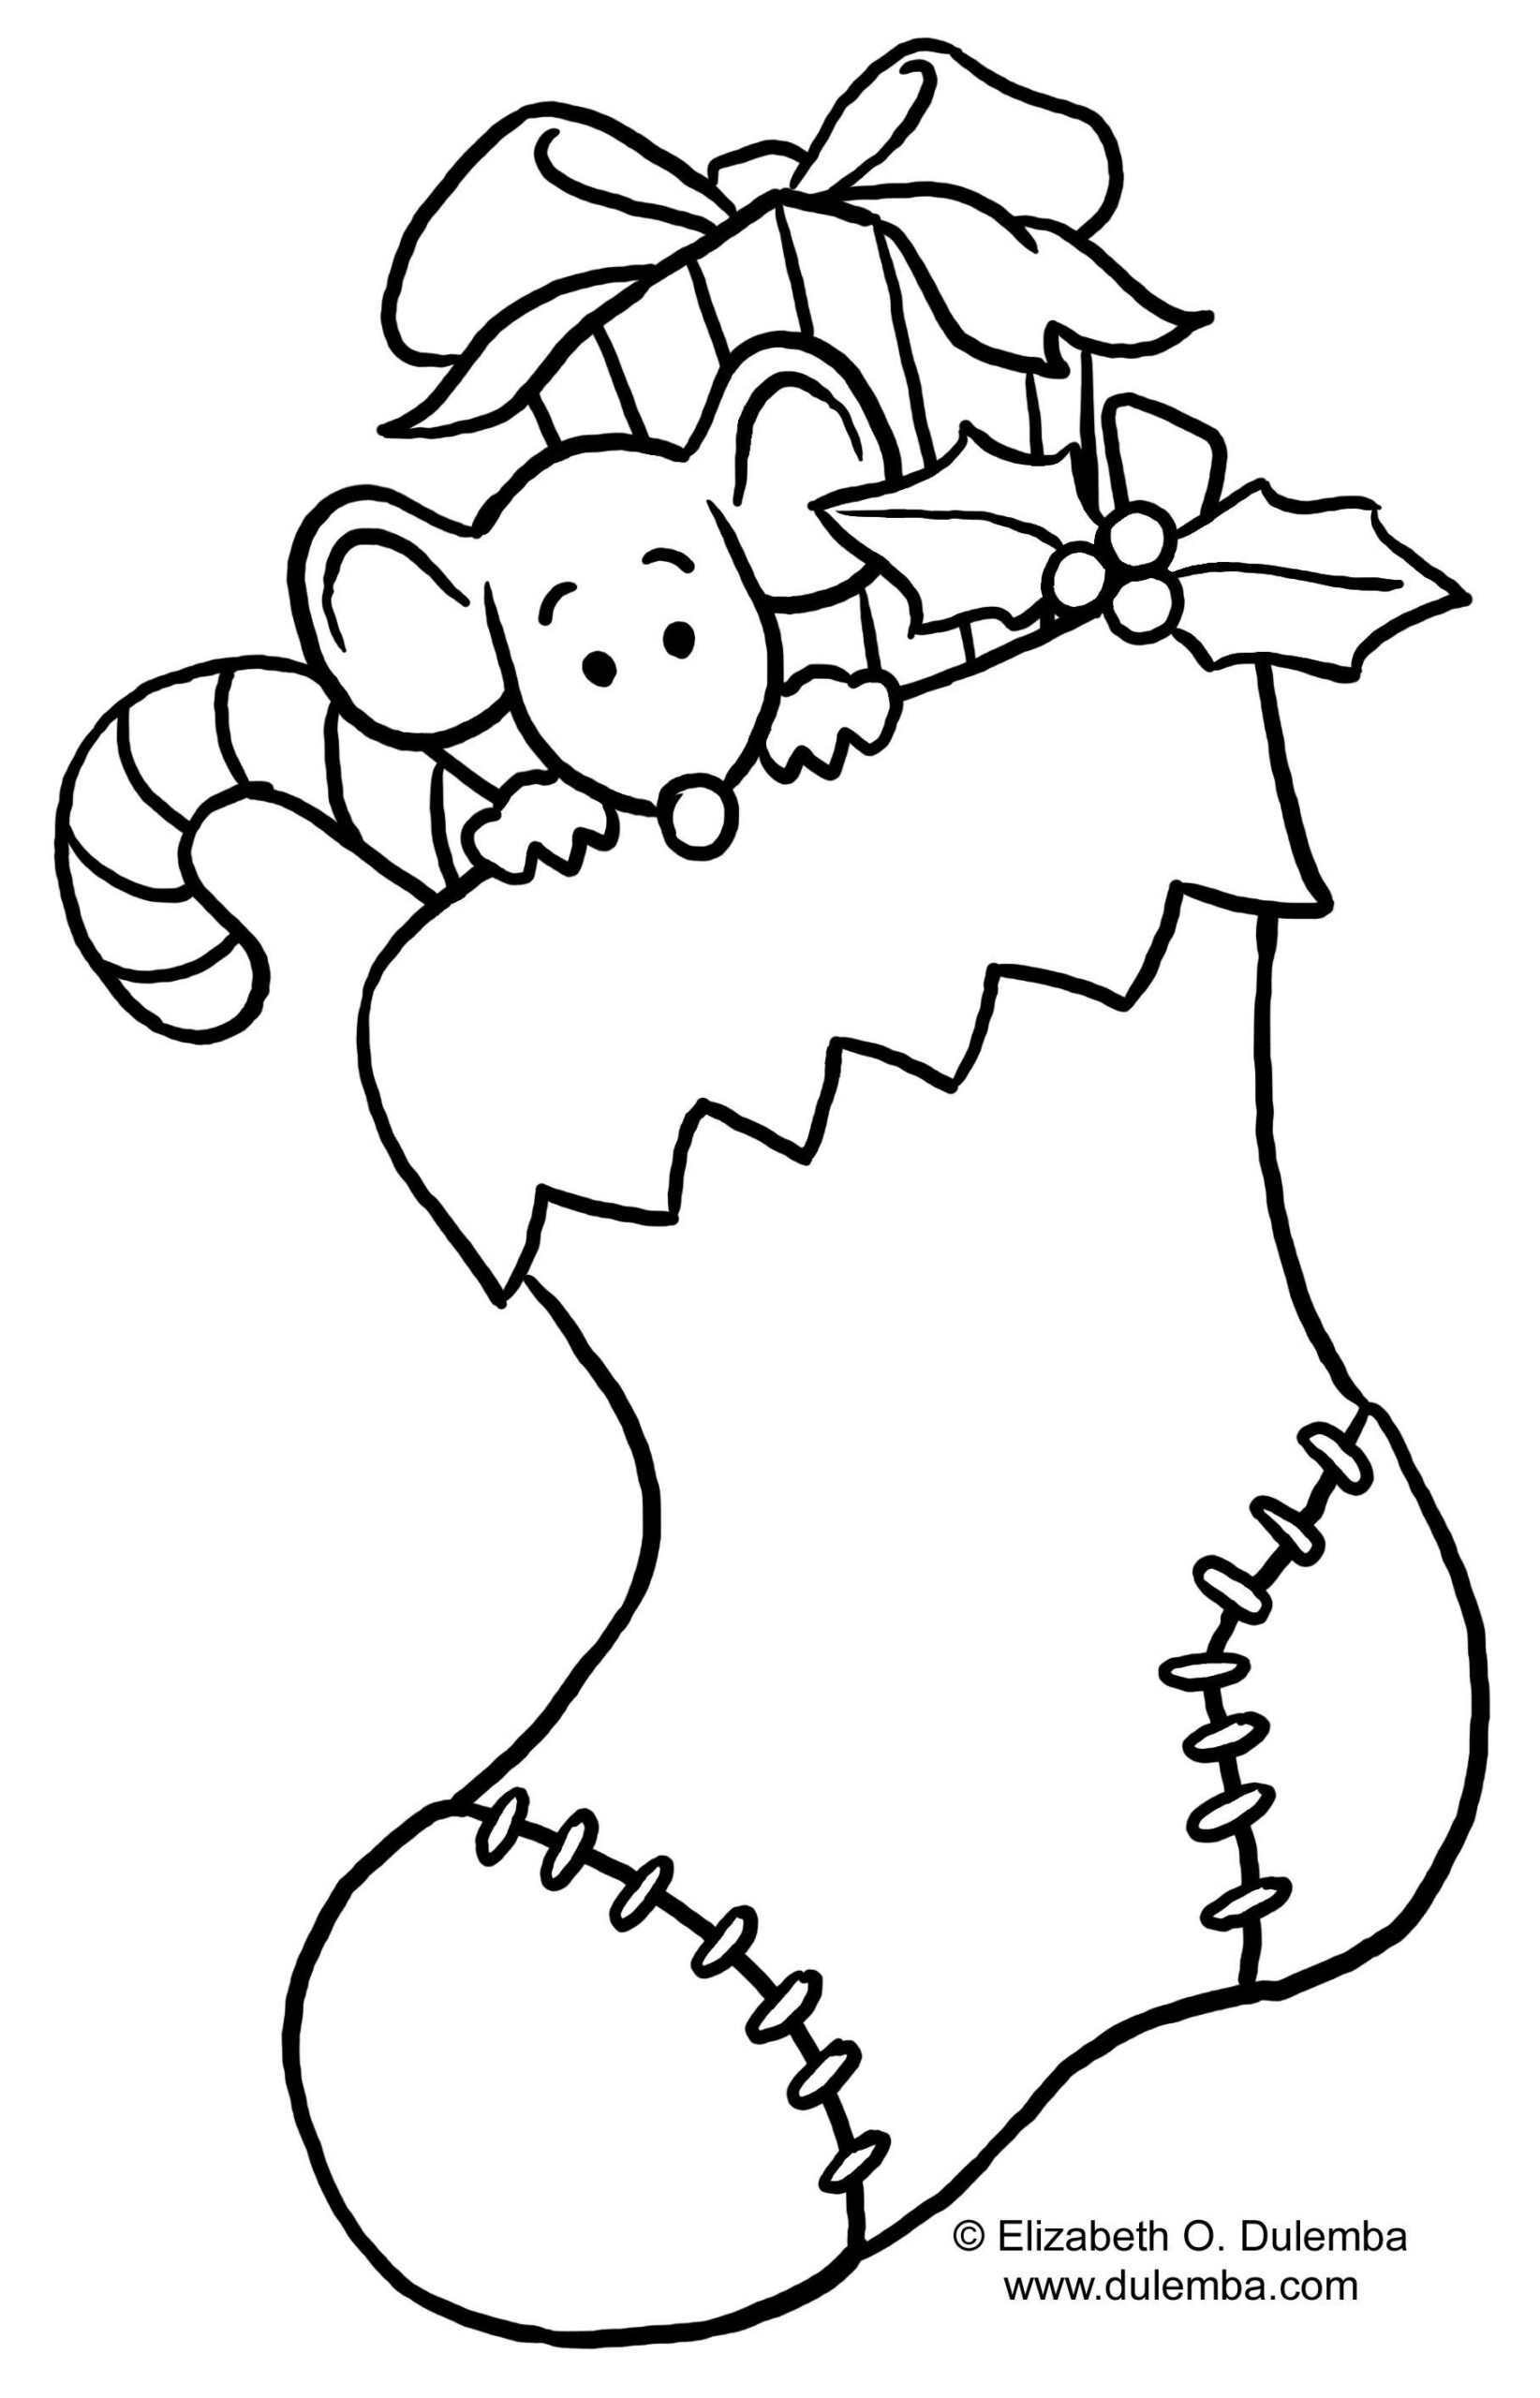 24+ Marvelous Image Of Stocking Coloring Page - Davemelillo